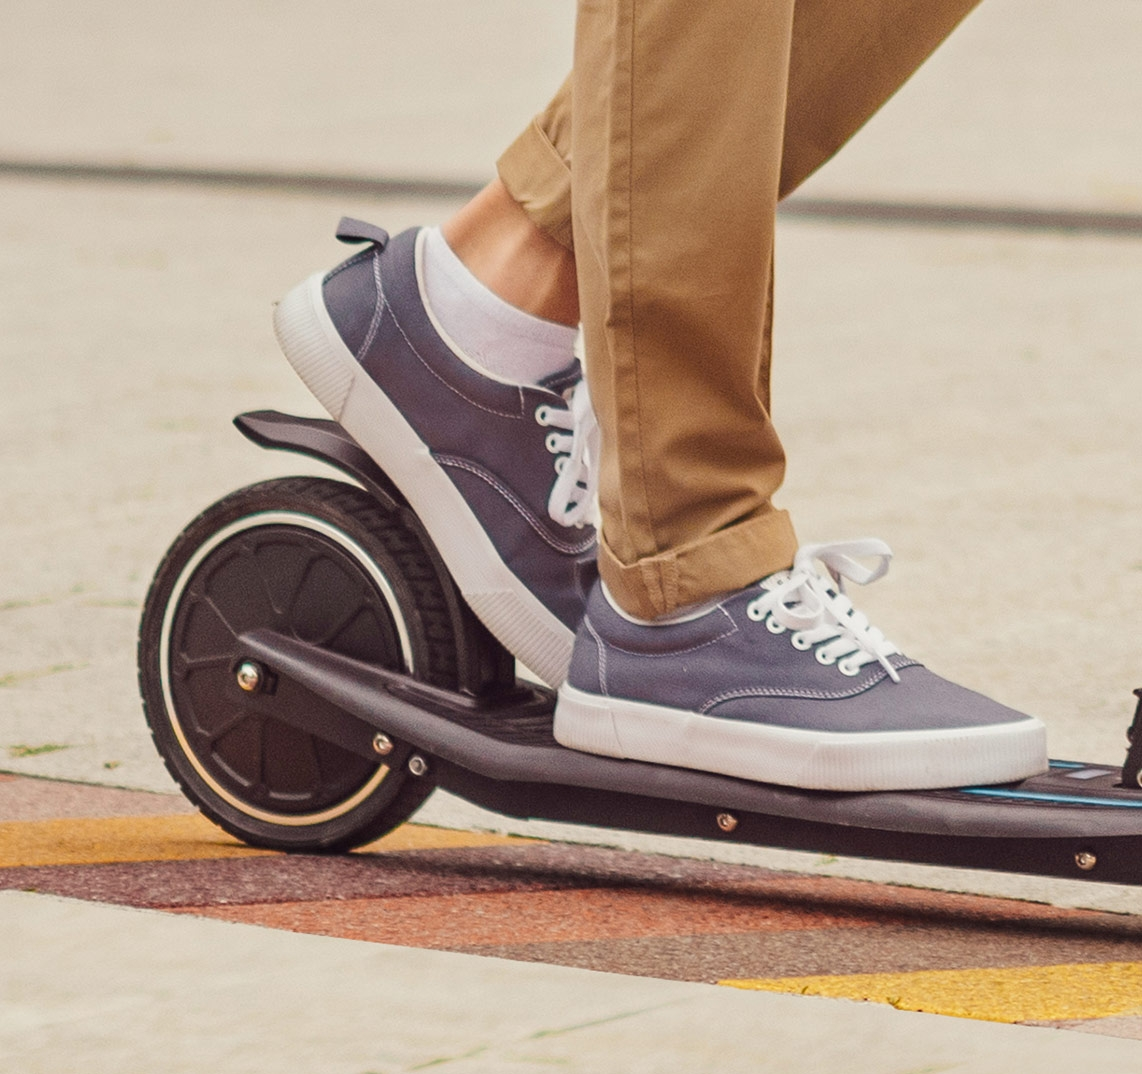 ONE-K-EMOTION-electric-scooter-with-E-ABS-braking-system